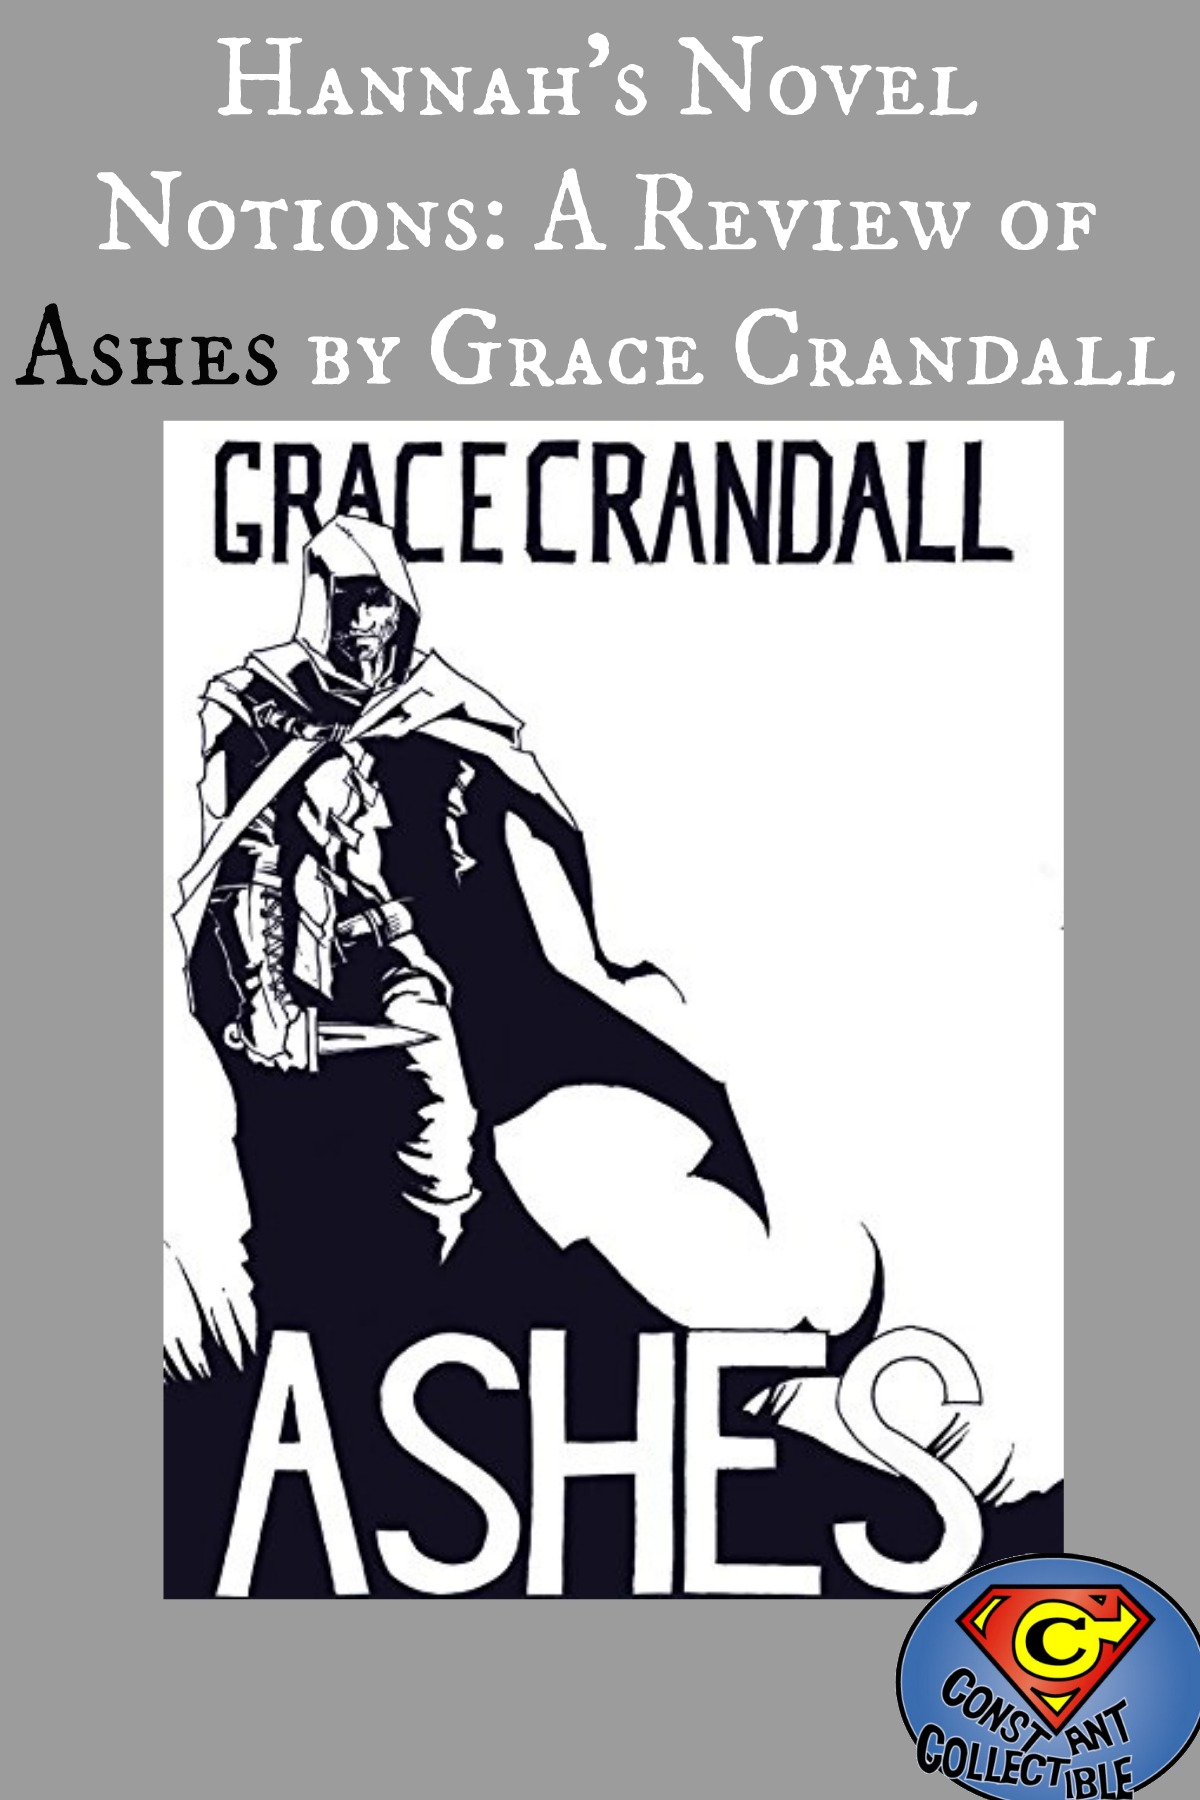 Hannah's Novel Notions: A Review of Ashes by Grace Crandall